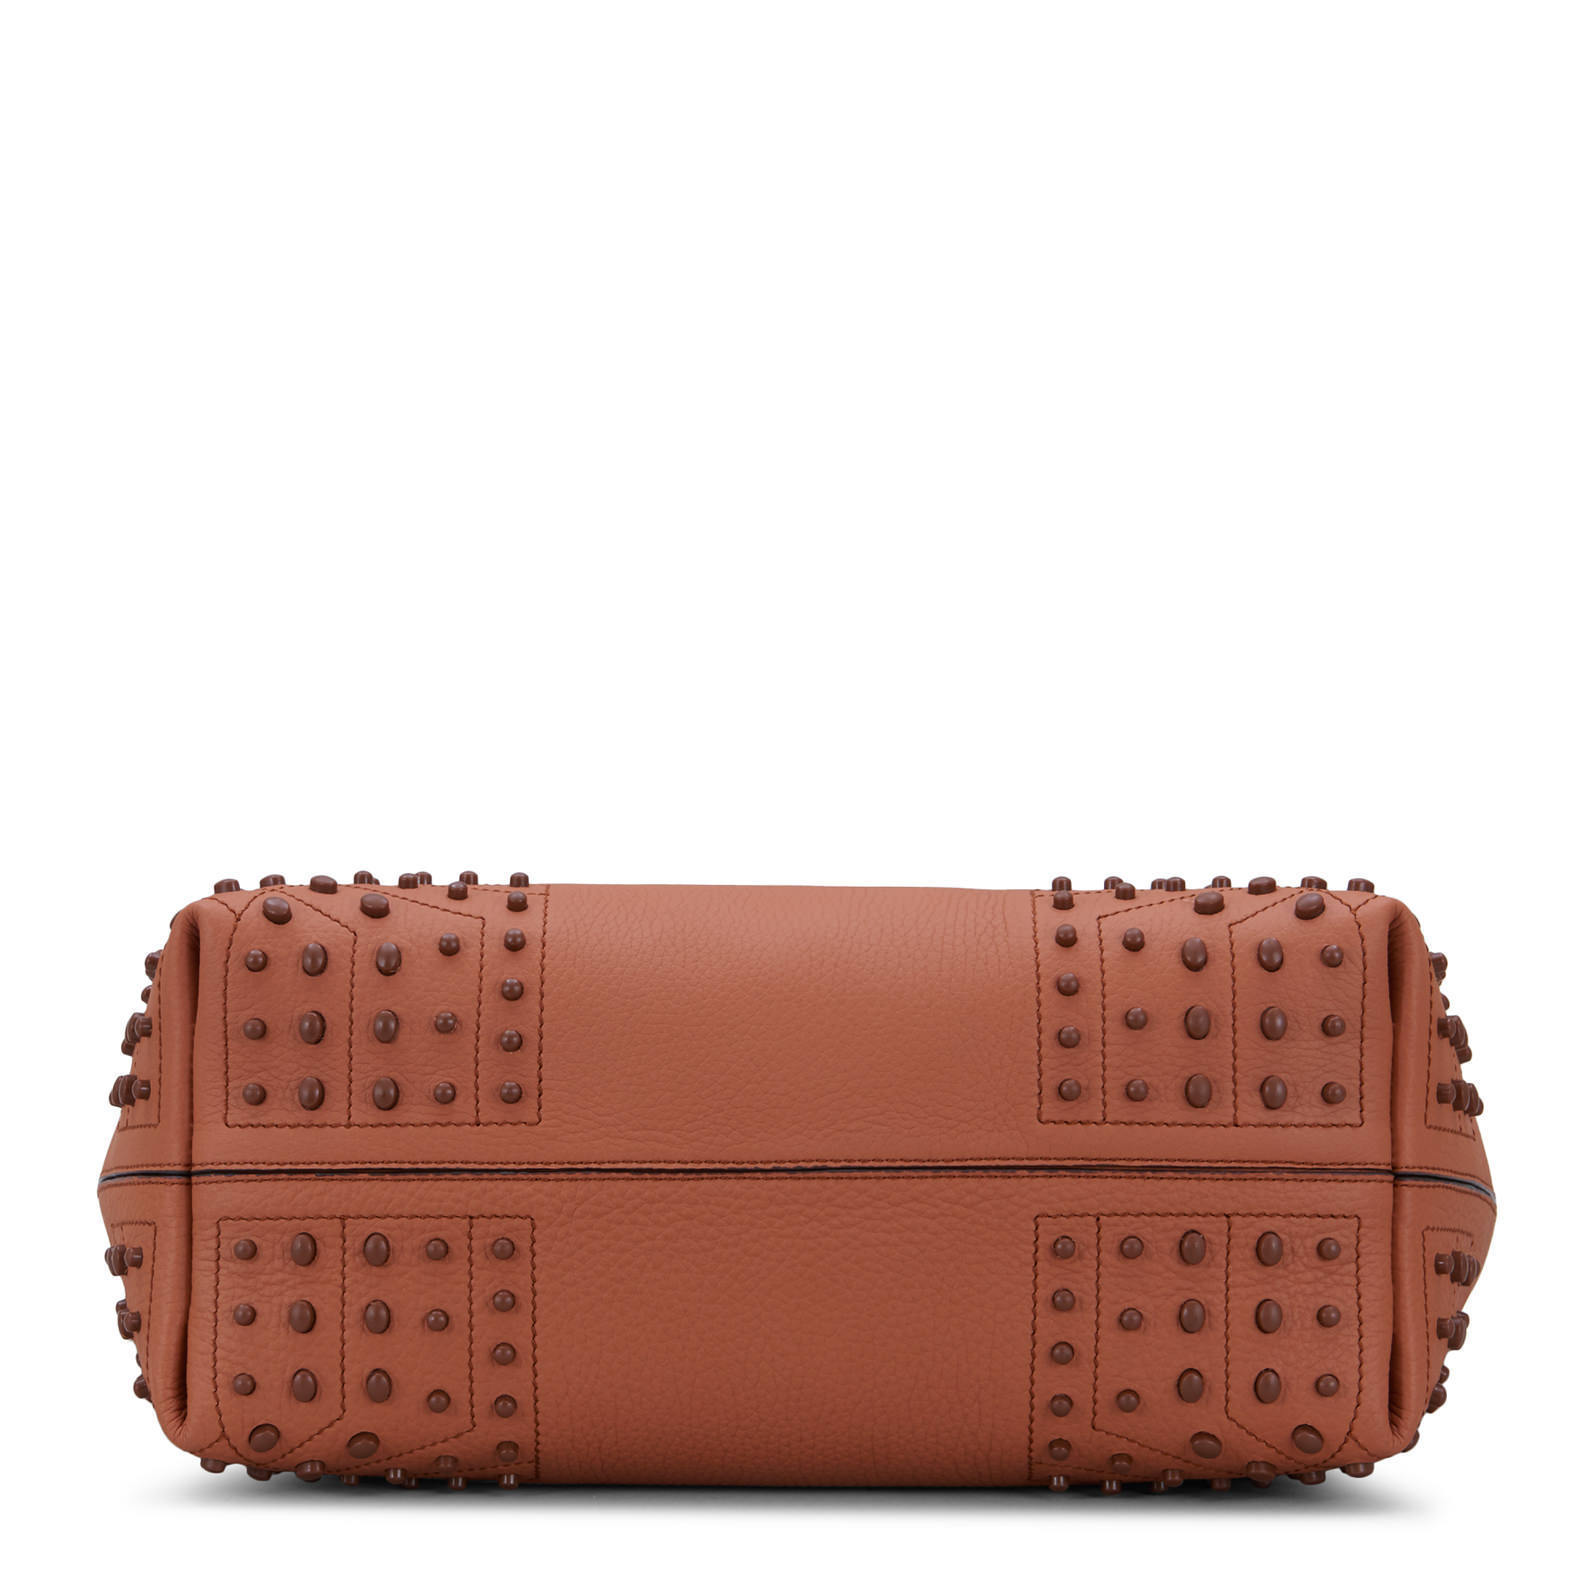 【17aw NEW】 TOD'S_women WAVE BAG/ トートバッグメディア